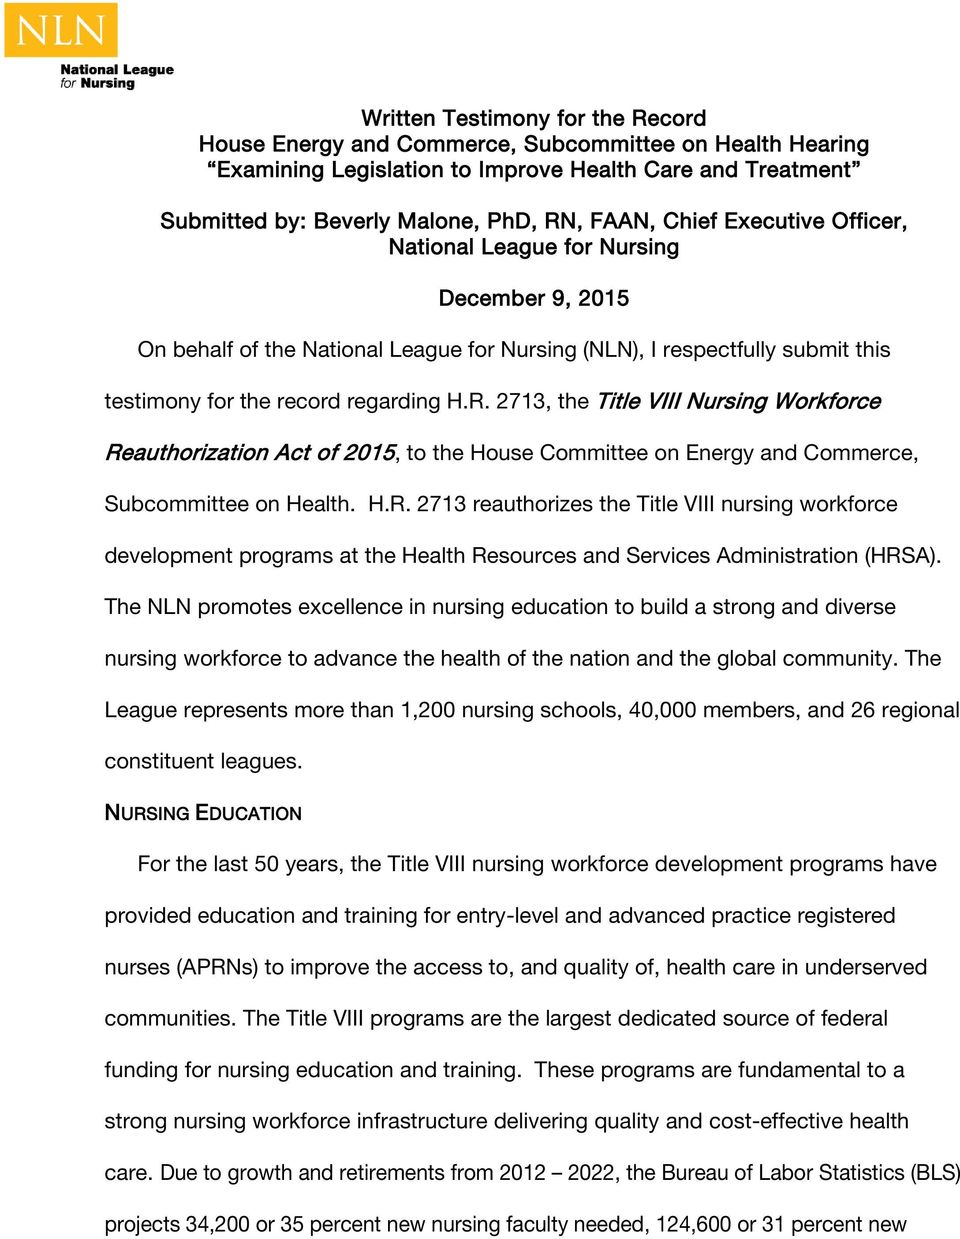 2713, the Title VIII Nursing Workforce Reauthorization Act of 2015, to the House Committee on Energy and Commerce, Subcommittee on Health. H.R. 2713 reauthorizes the Title VIII nursing workforce development programs at the Health Resources and Services Administration (HRSA).